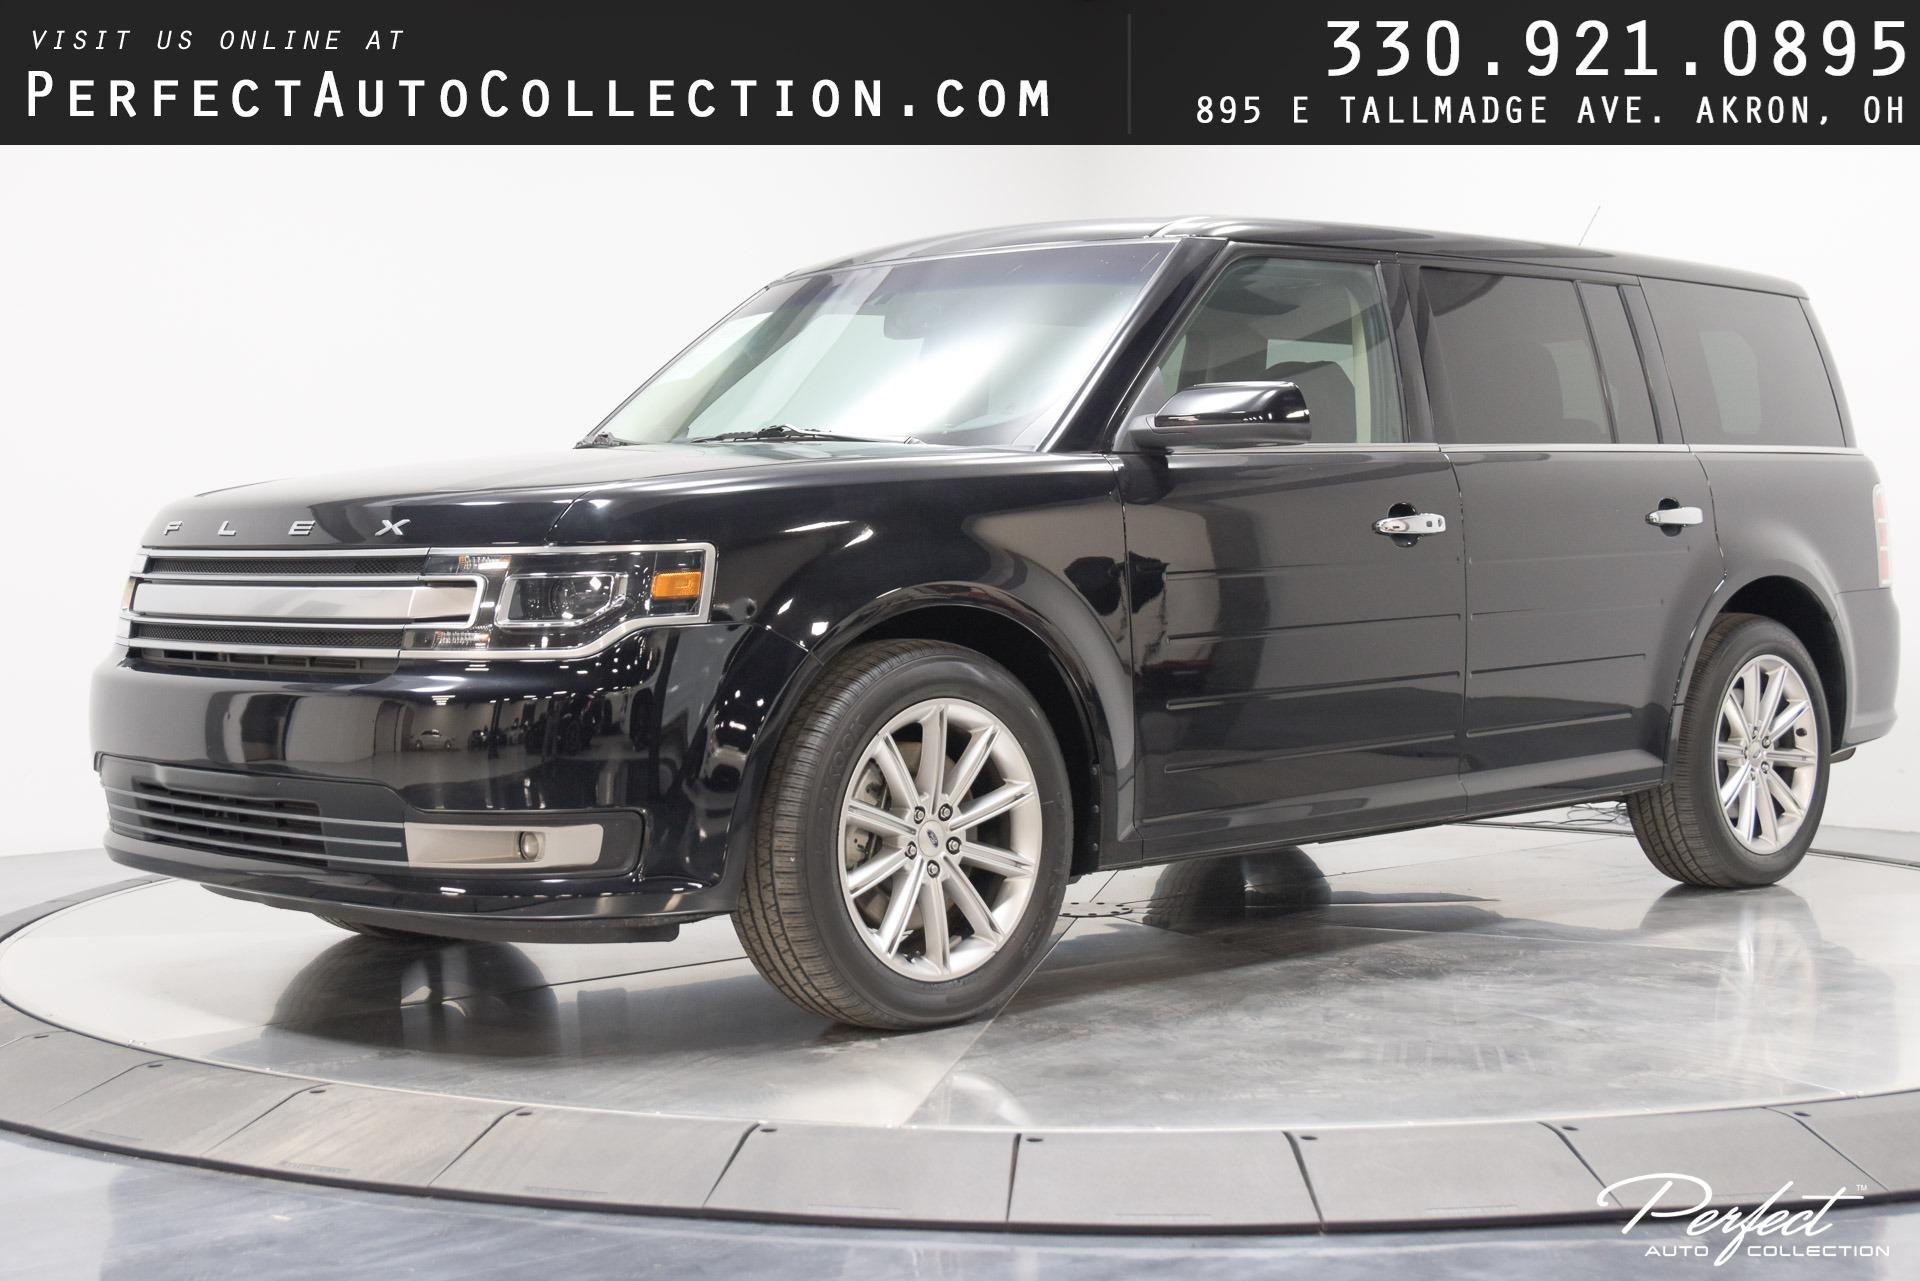 Used 2019 Ford Flex Limited for sale $25,895 at Perfect Auto Collection in Akron OH 44310 1